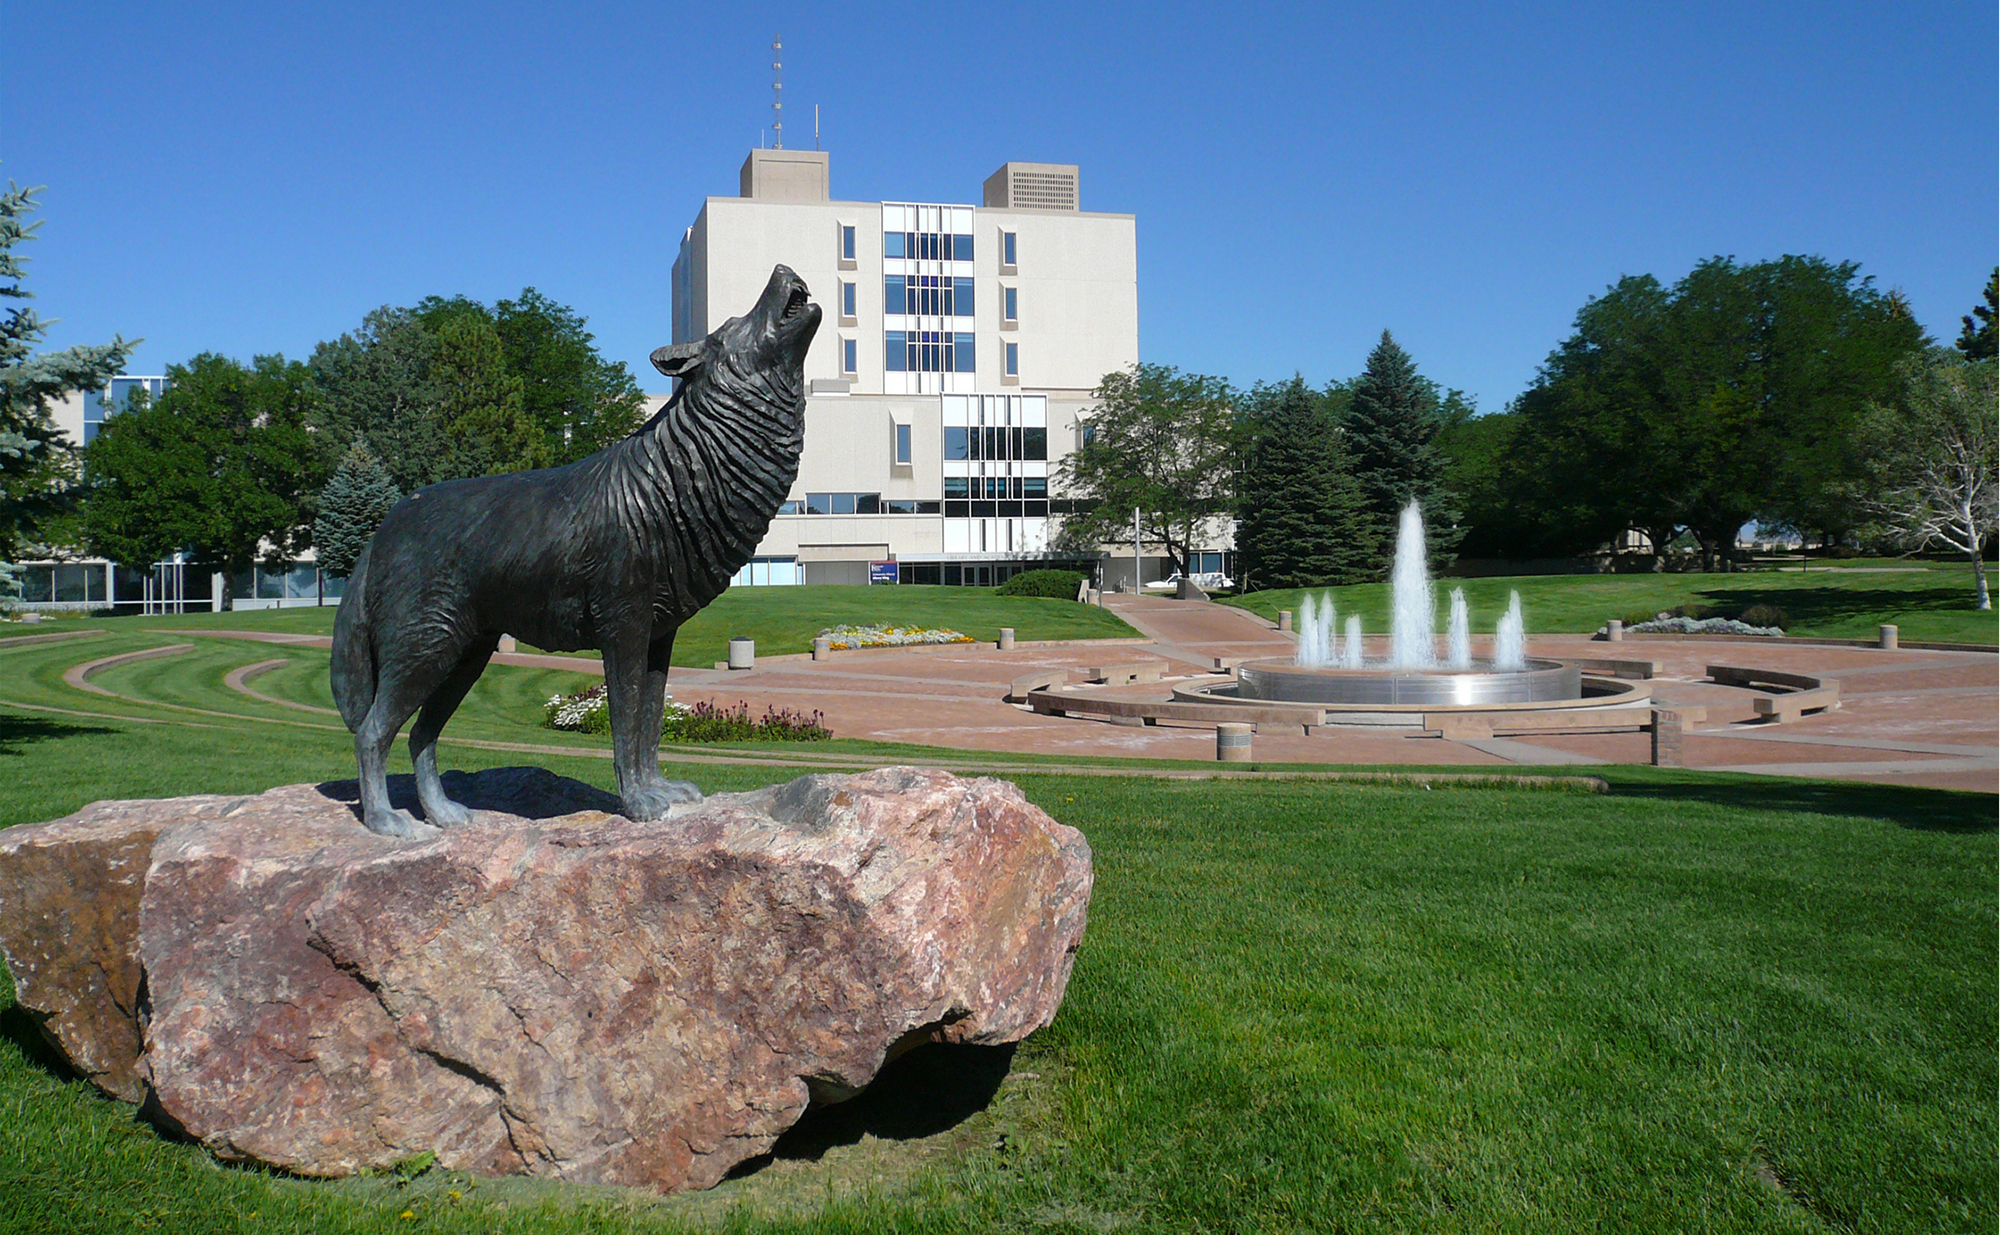 The CSU-Pueblo campus